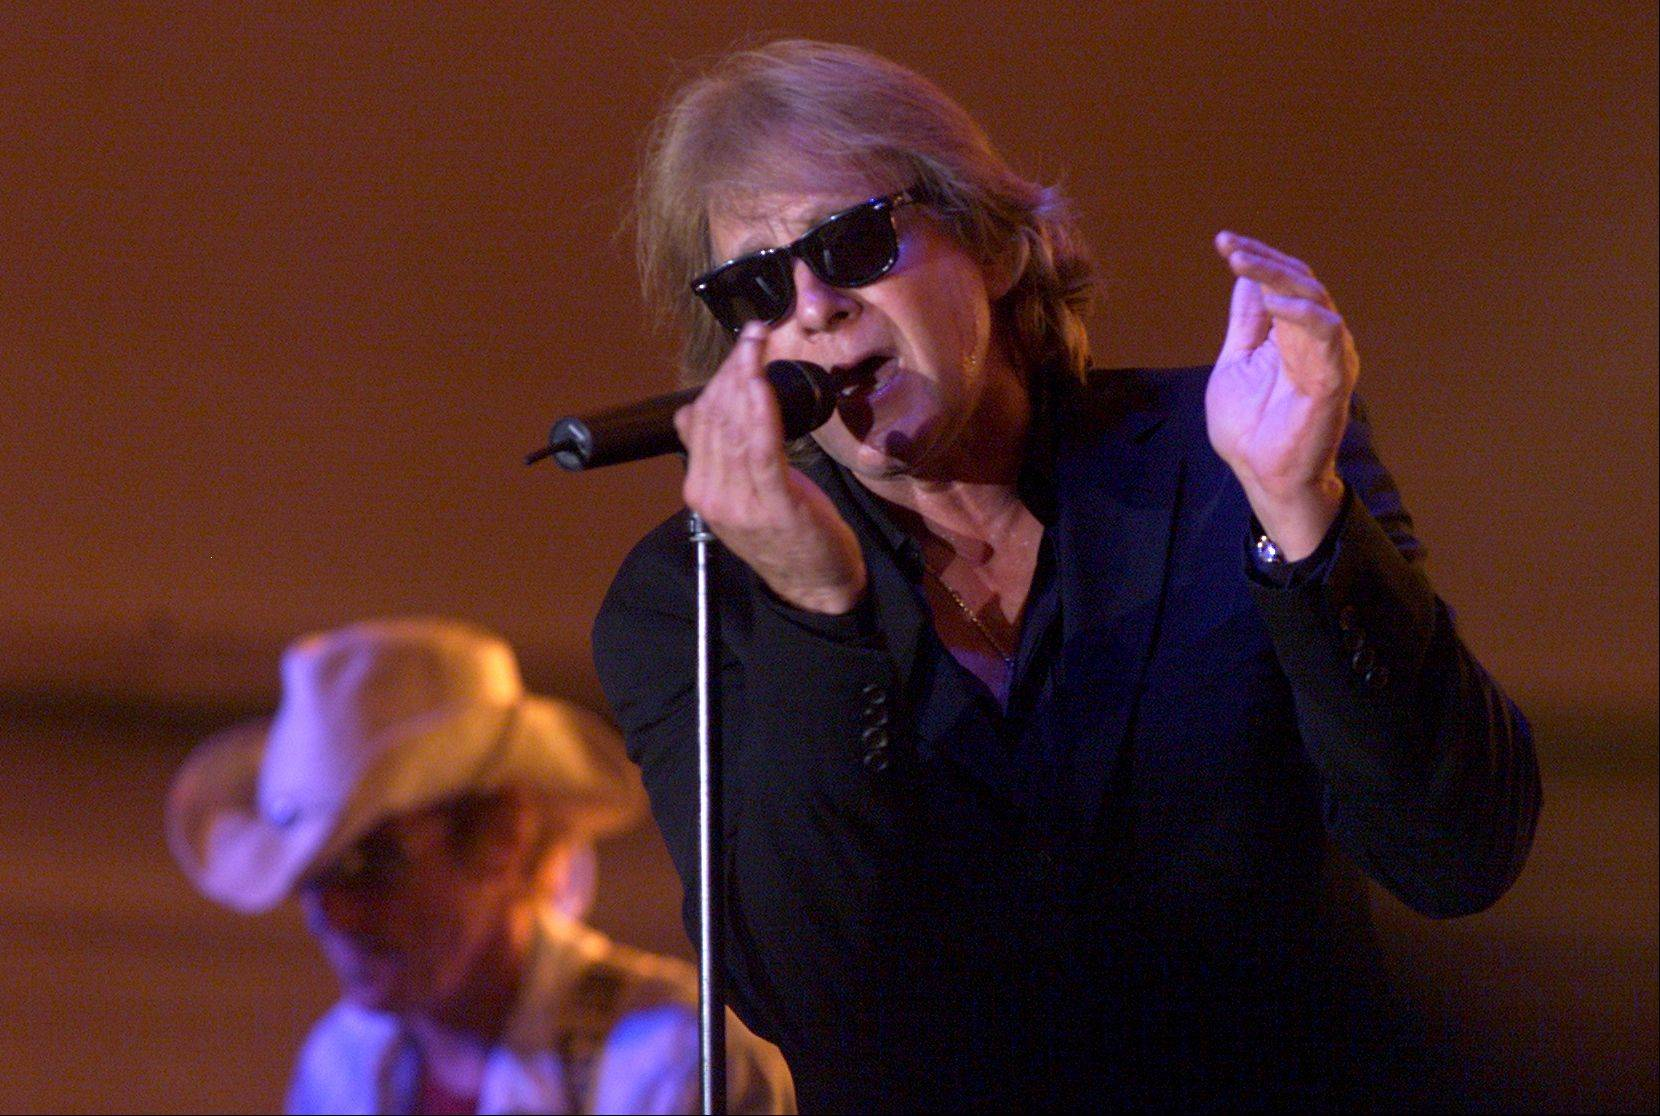 Eddie Money has been booked to perform the first night of Schaumburg's three-day Septemberfest on Saturday, Sept. 3.